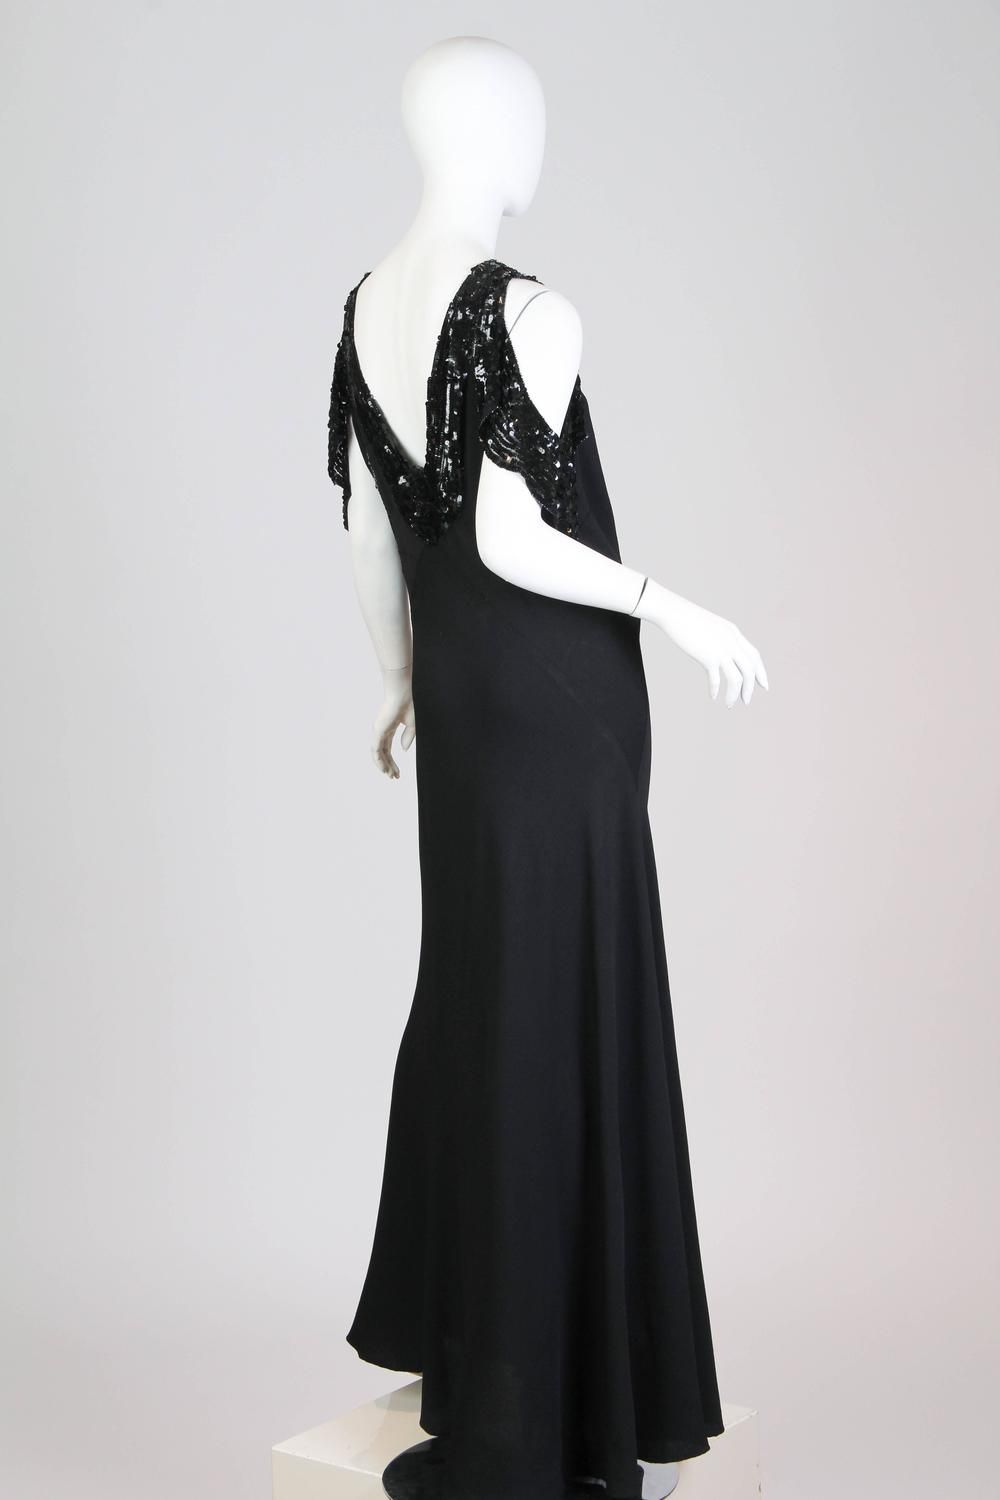 Bias cut s gown with sequin sleeves s sequins and gowns